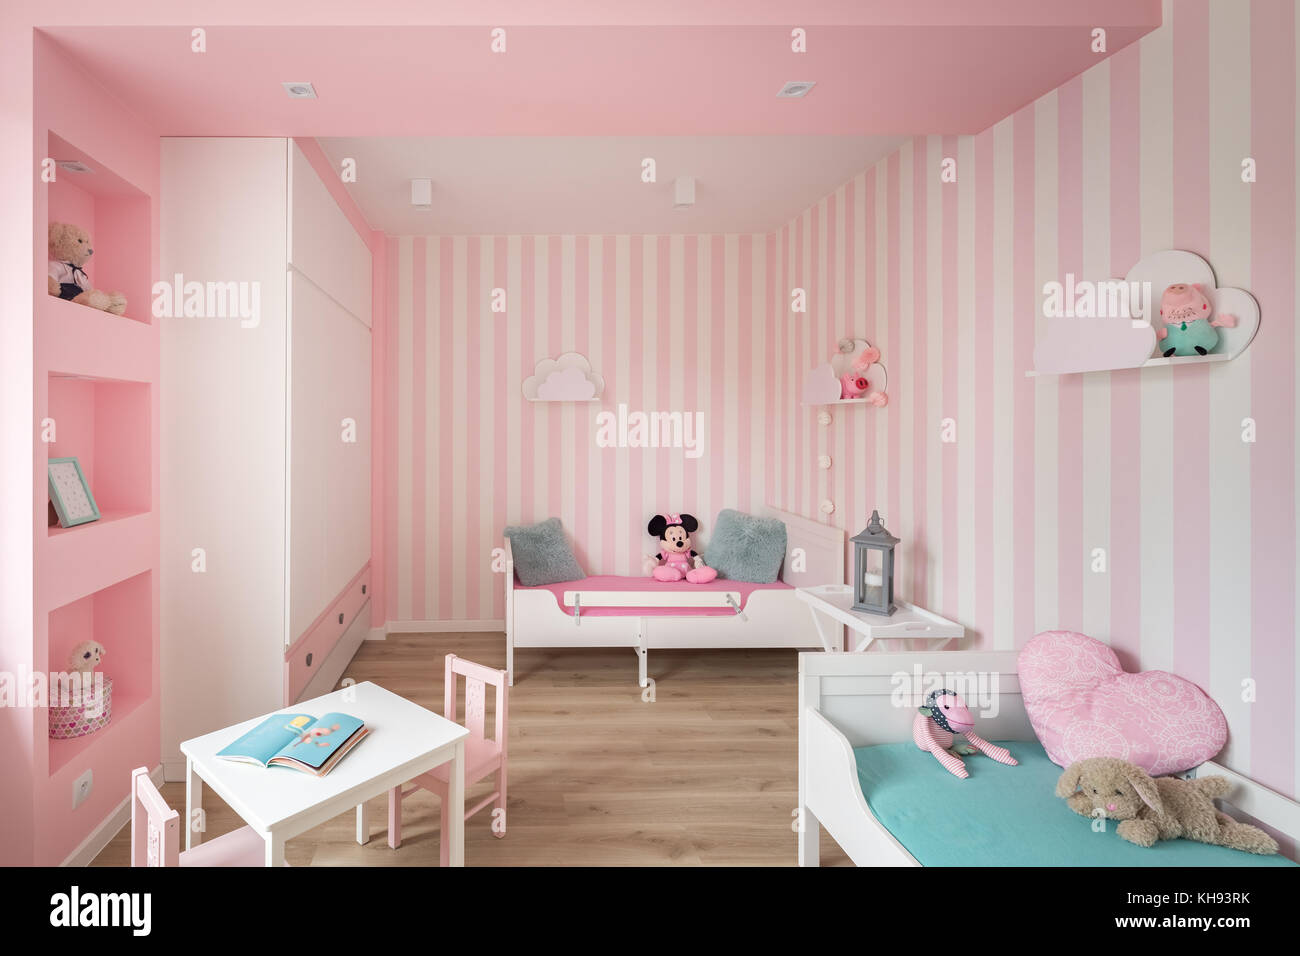 Pink Baby Room With Striped Wall And White Furniture Stock Photo